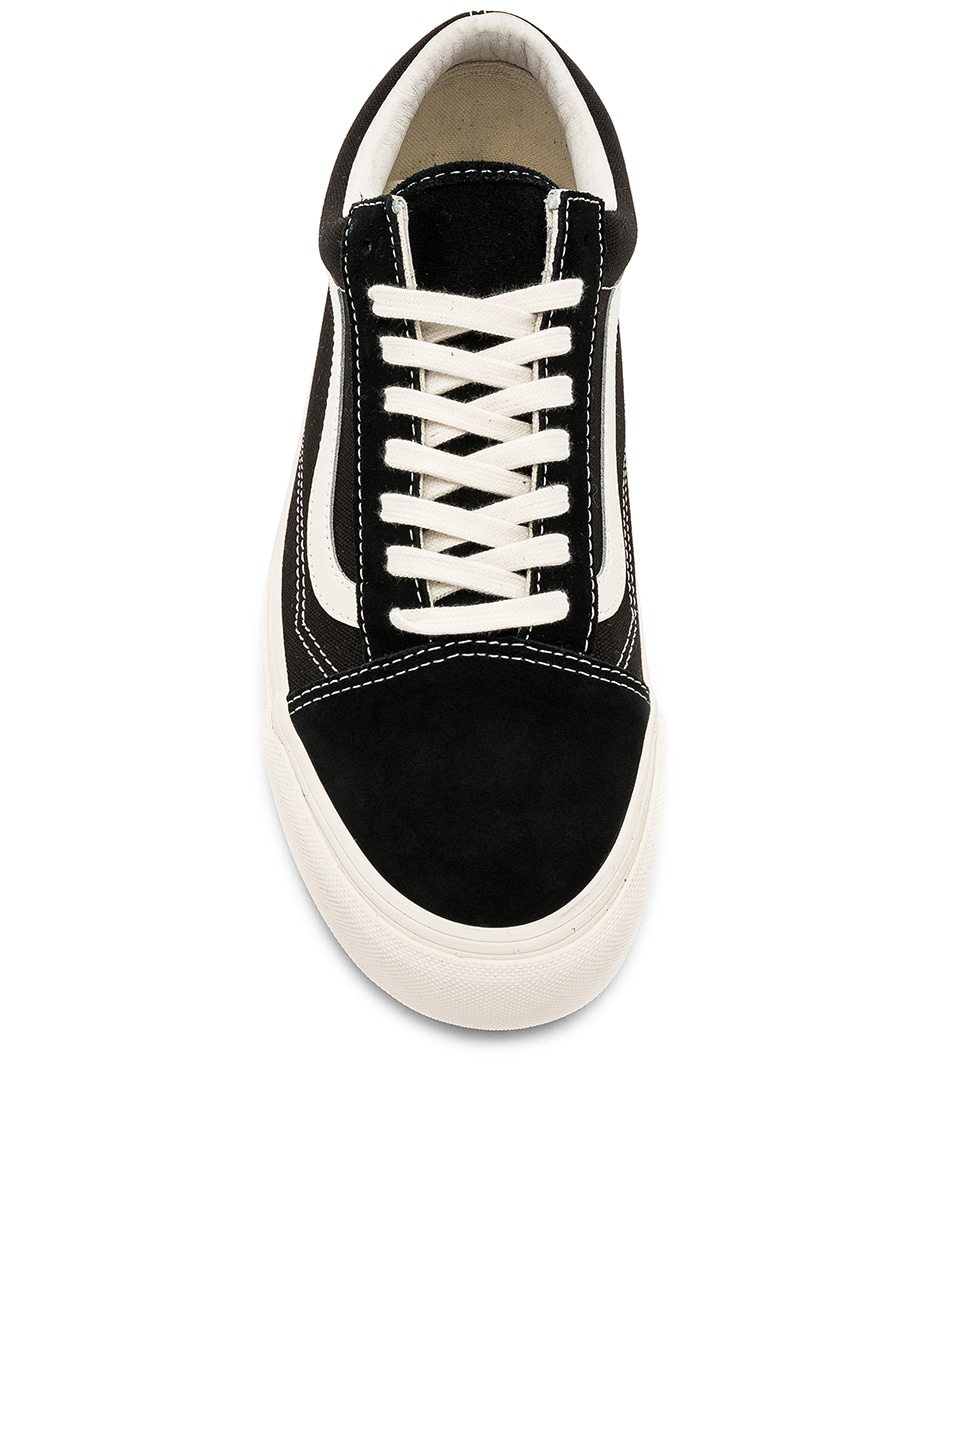 6feb61e7ae Image 4 of Vans Vault OG Old Skool LX in Black   Marshmallow